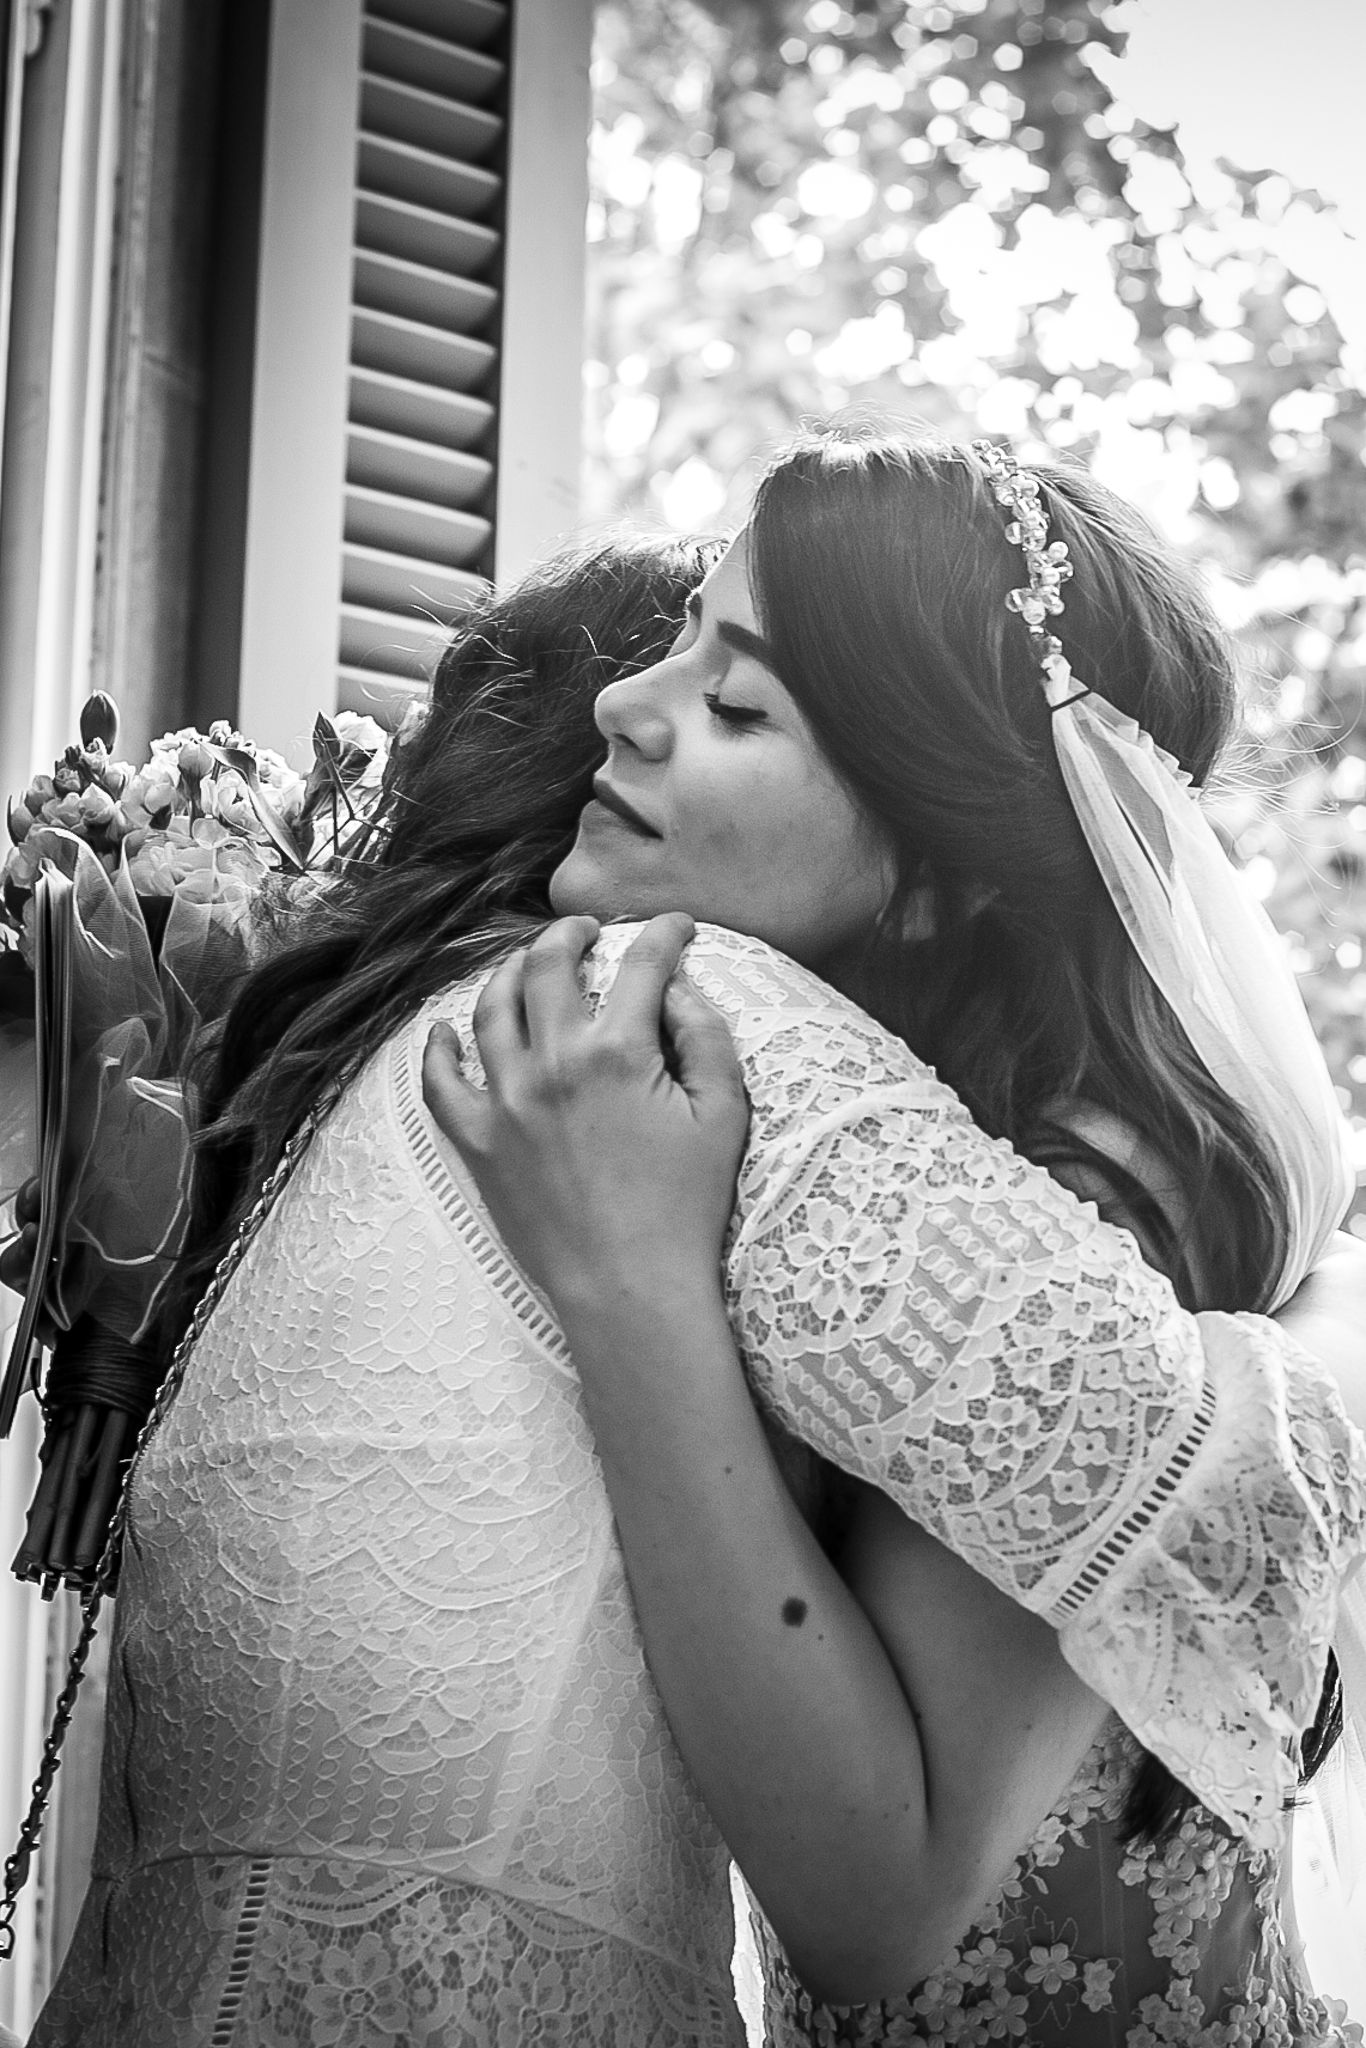 Bride hugging her friend after getting married